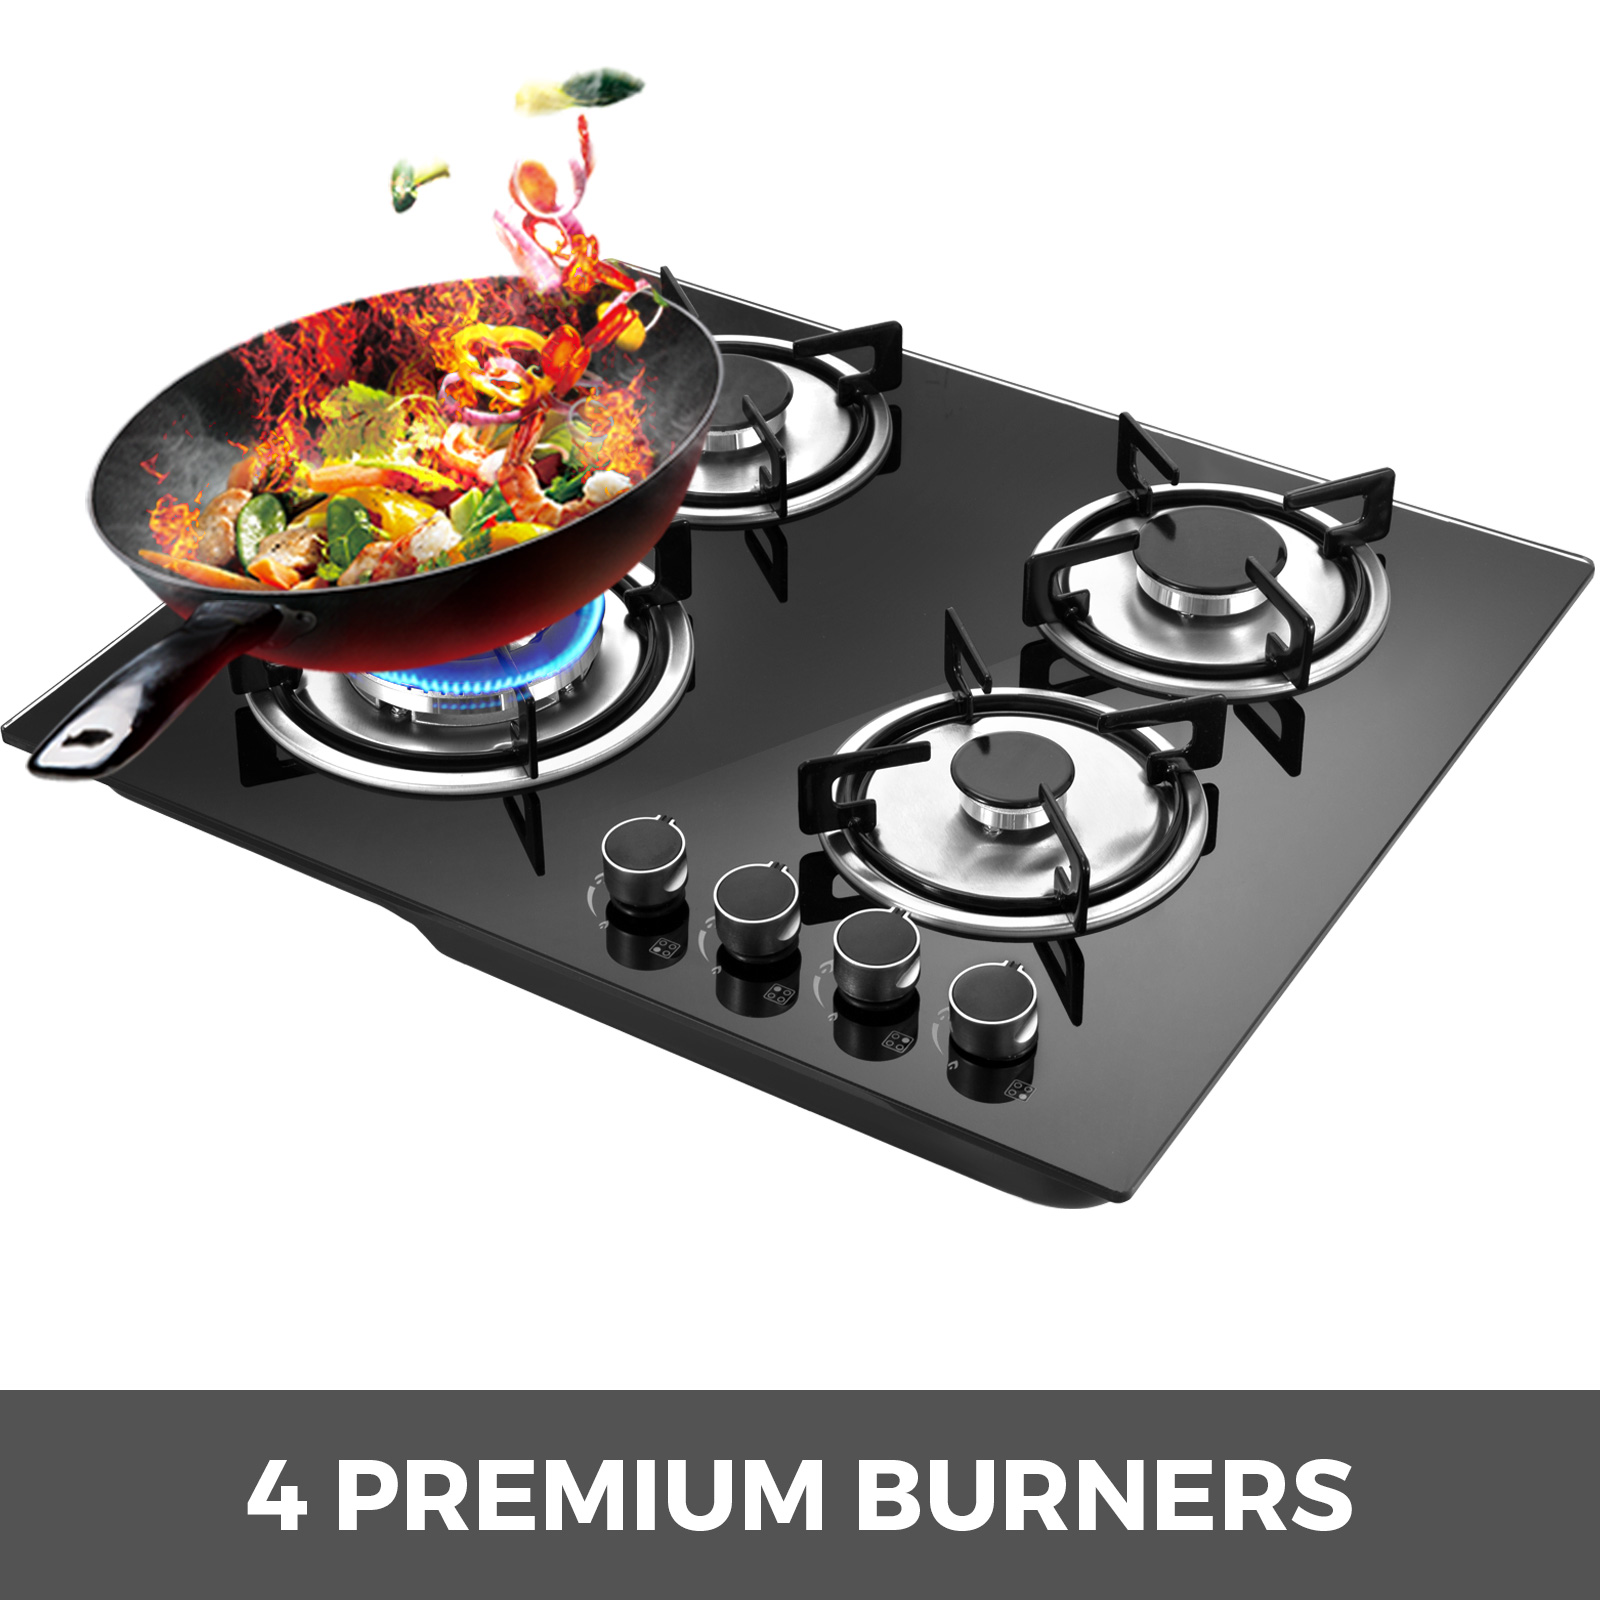 Tempered-Glass-4-Burners-Stove-Gas-Cooktop-iron-grates-LPG-amp-LNG-Gas-St-Steel thumbnail 2